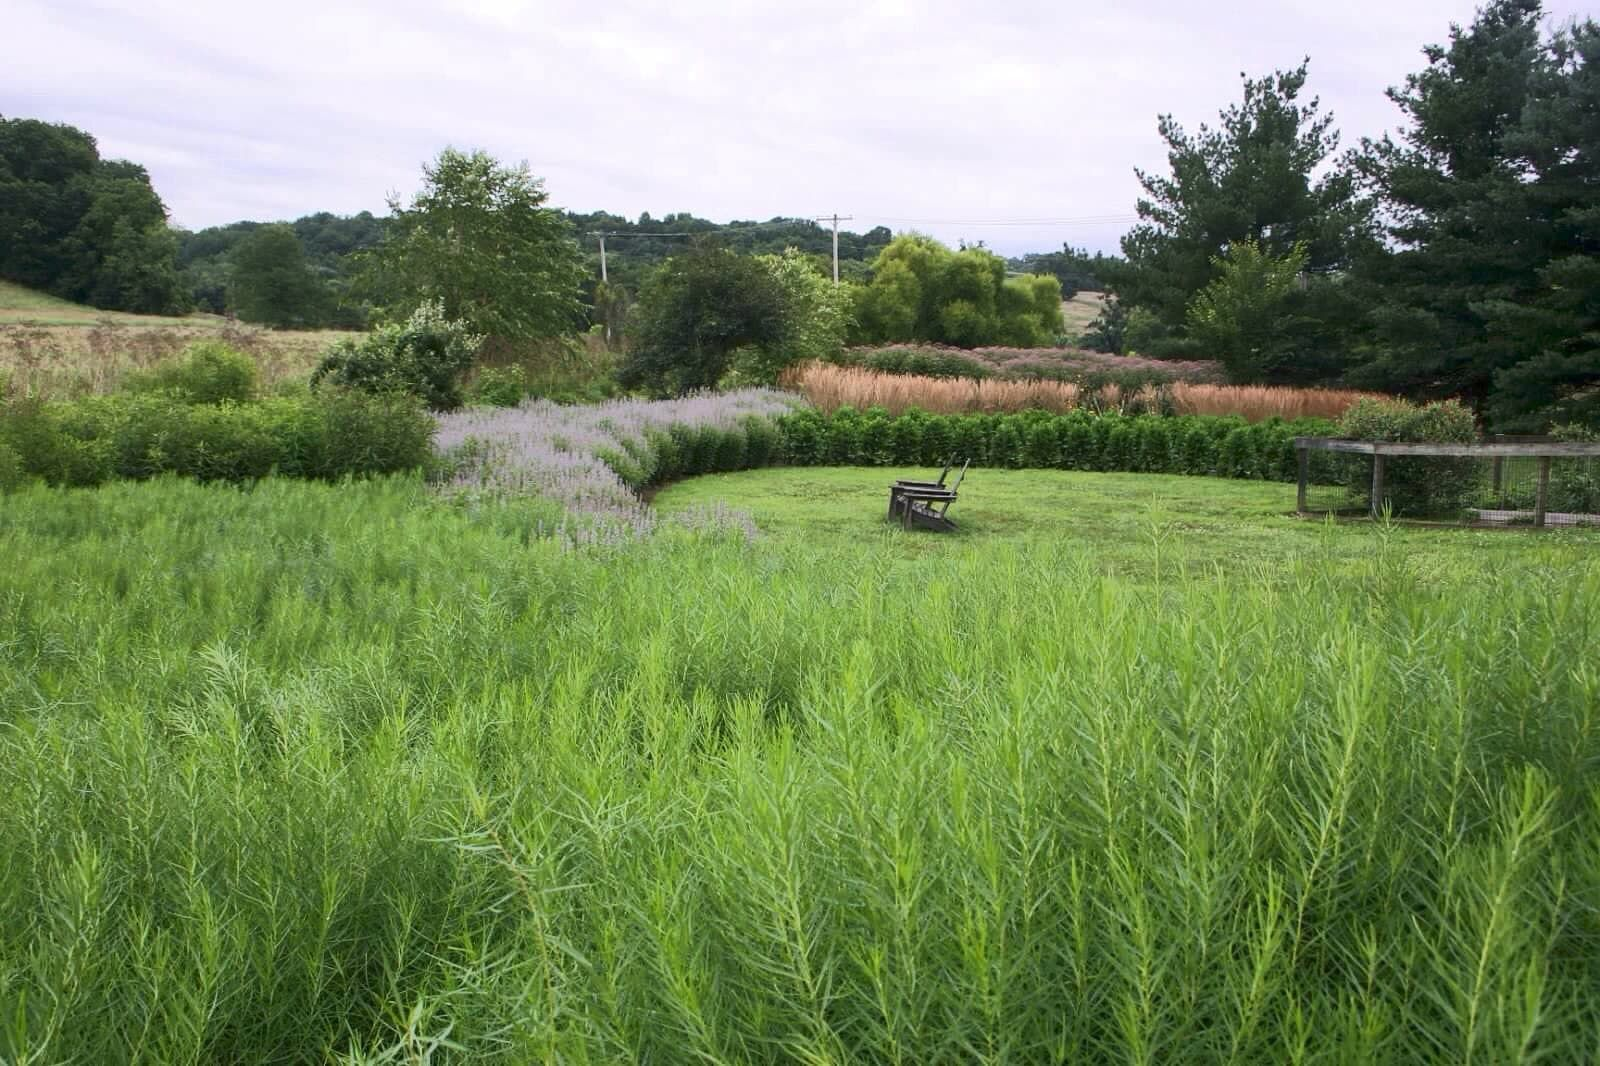 Meadow Design By Donald Pell Gardens In Chester County Meadow Design Landscape Architect Meadow Landscape